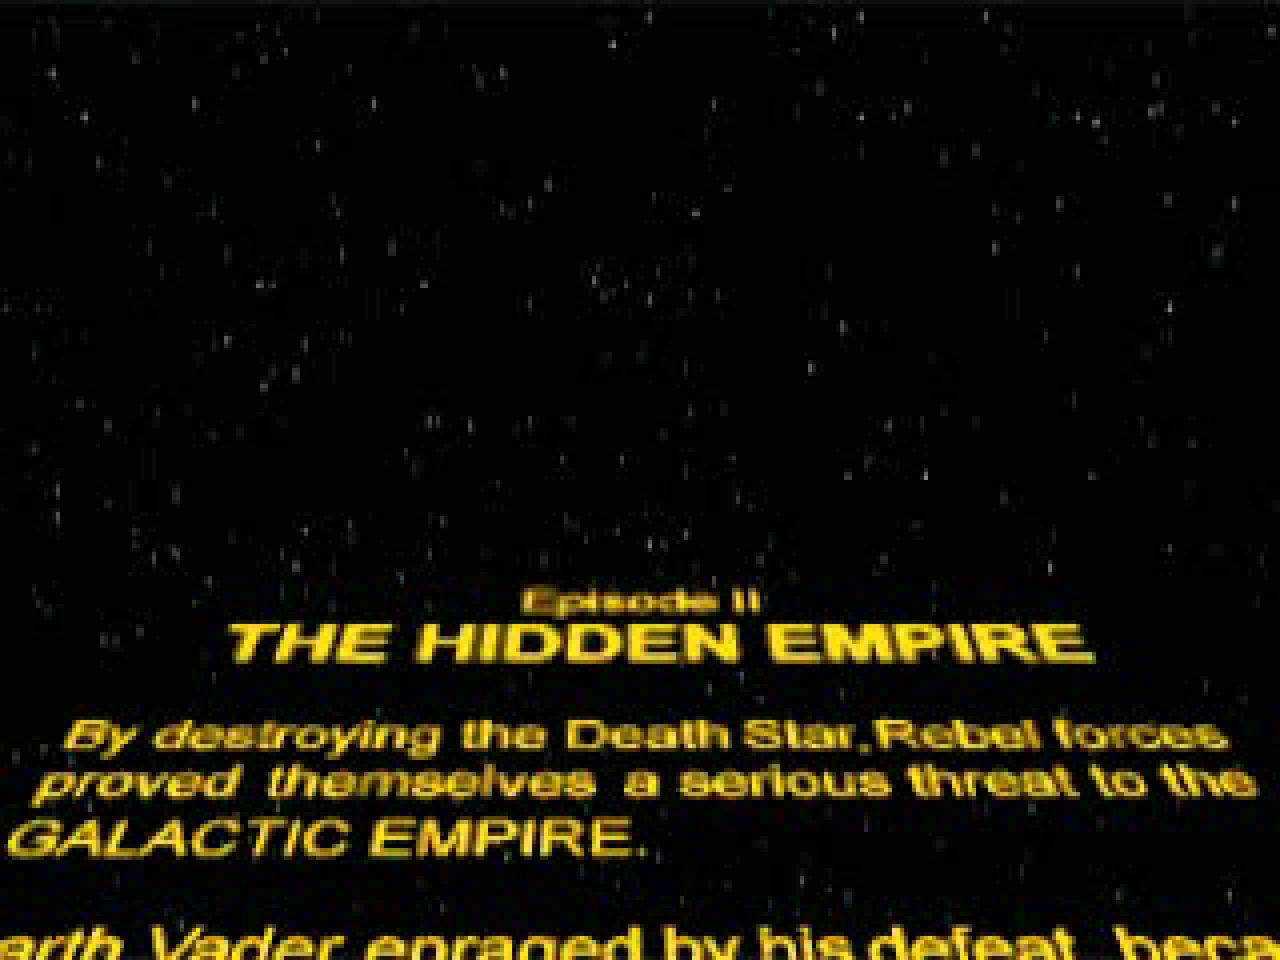 https://s3.eu-west-3.amazonaws.com/games.anthony-dessalles.com/Star Wars Rebel Assault II The Hidden Empire PS1 2020 - Screenshots/Star Wars Rebel Assault II The Hidden Empire Disc 1-201125-231349.png